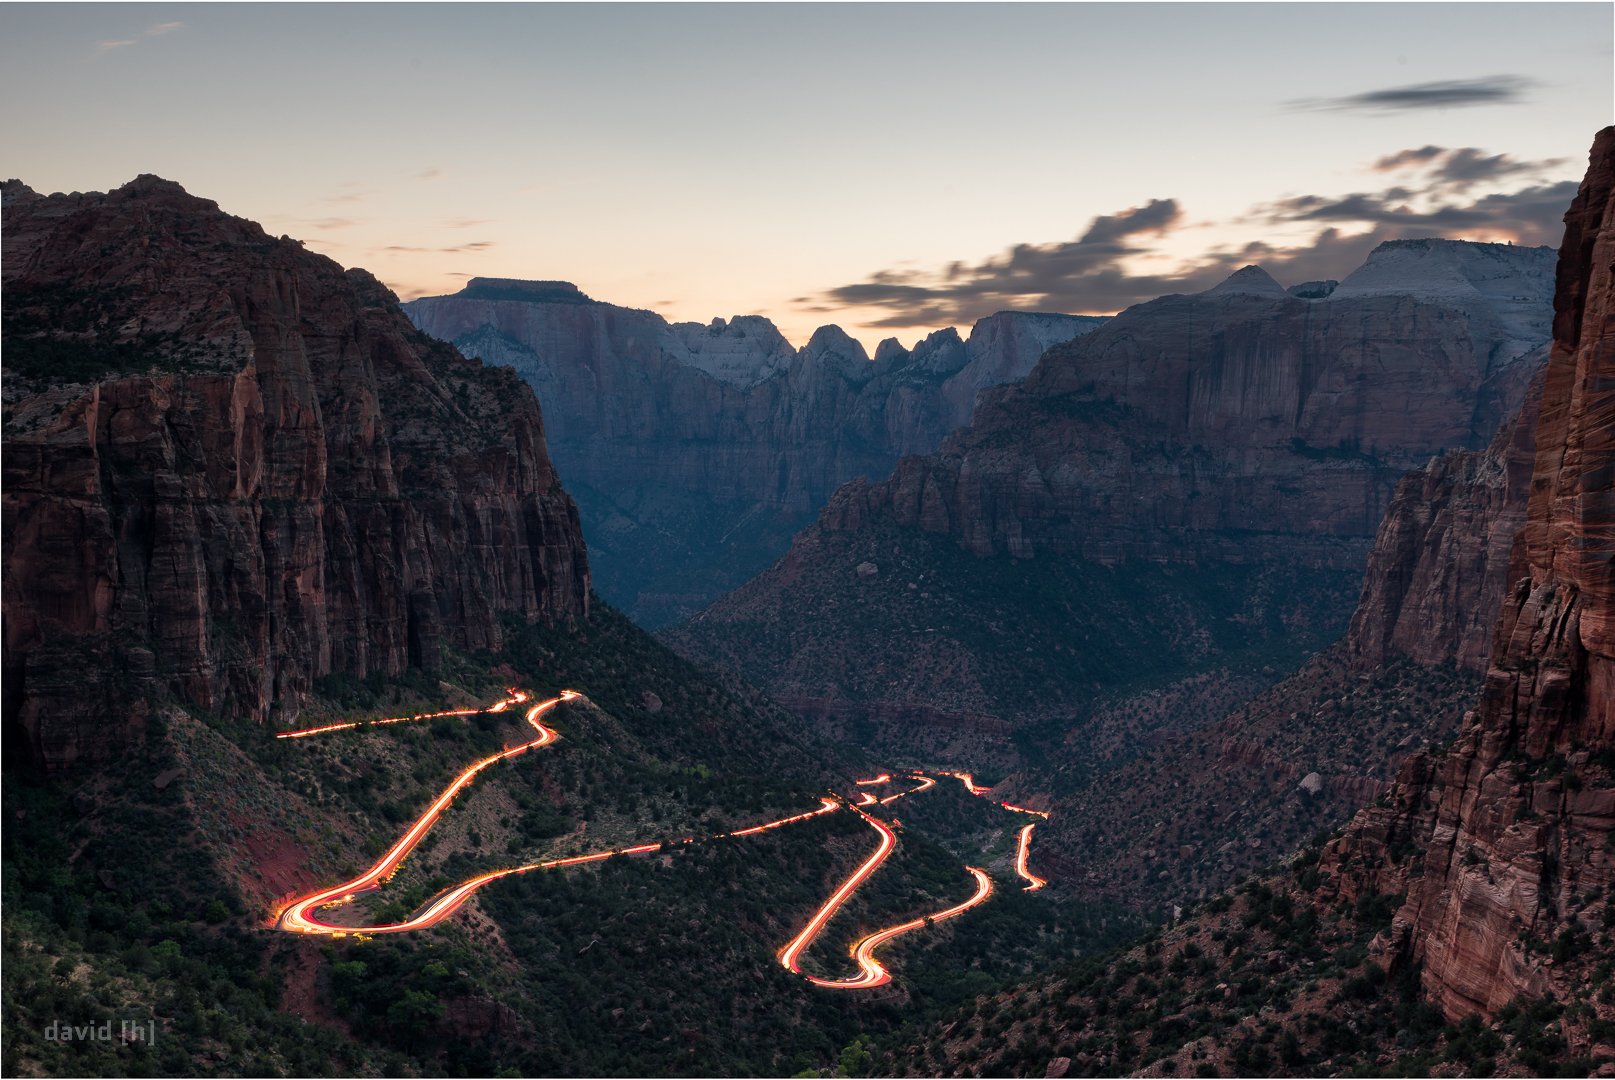 Cars snaking their way up to Canyon Overlook after sunset.